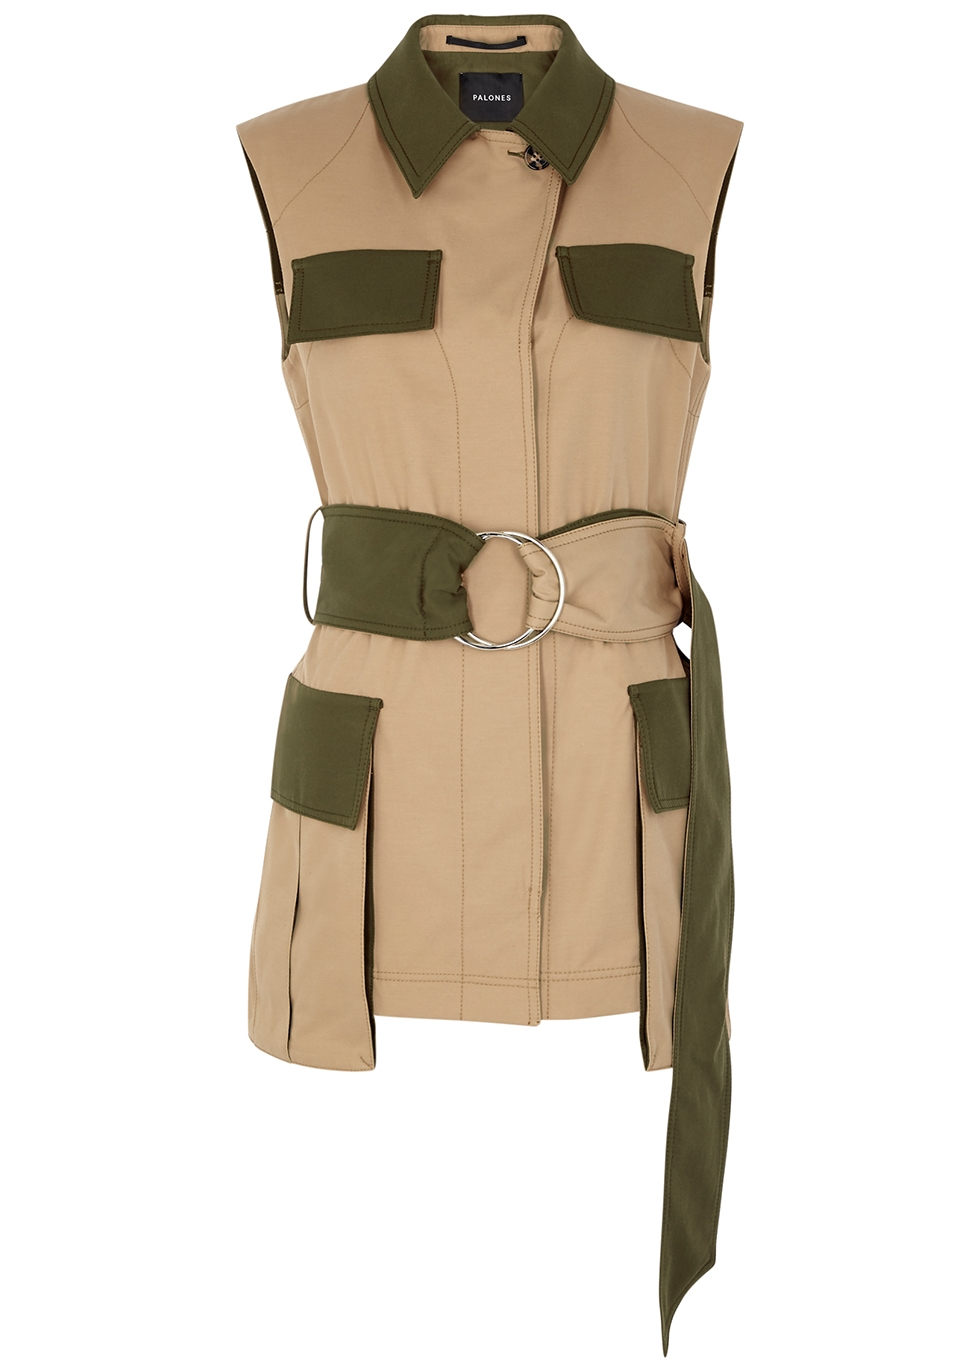 Notting Hill camel belted twill gilet